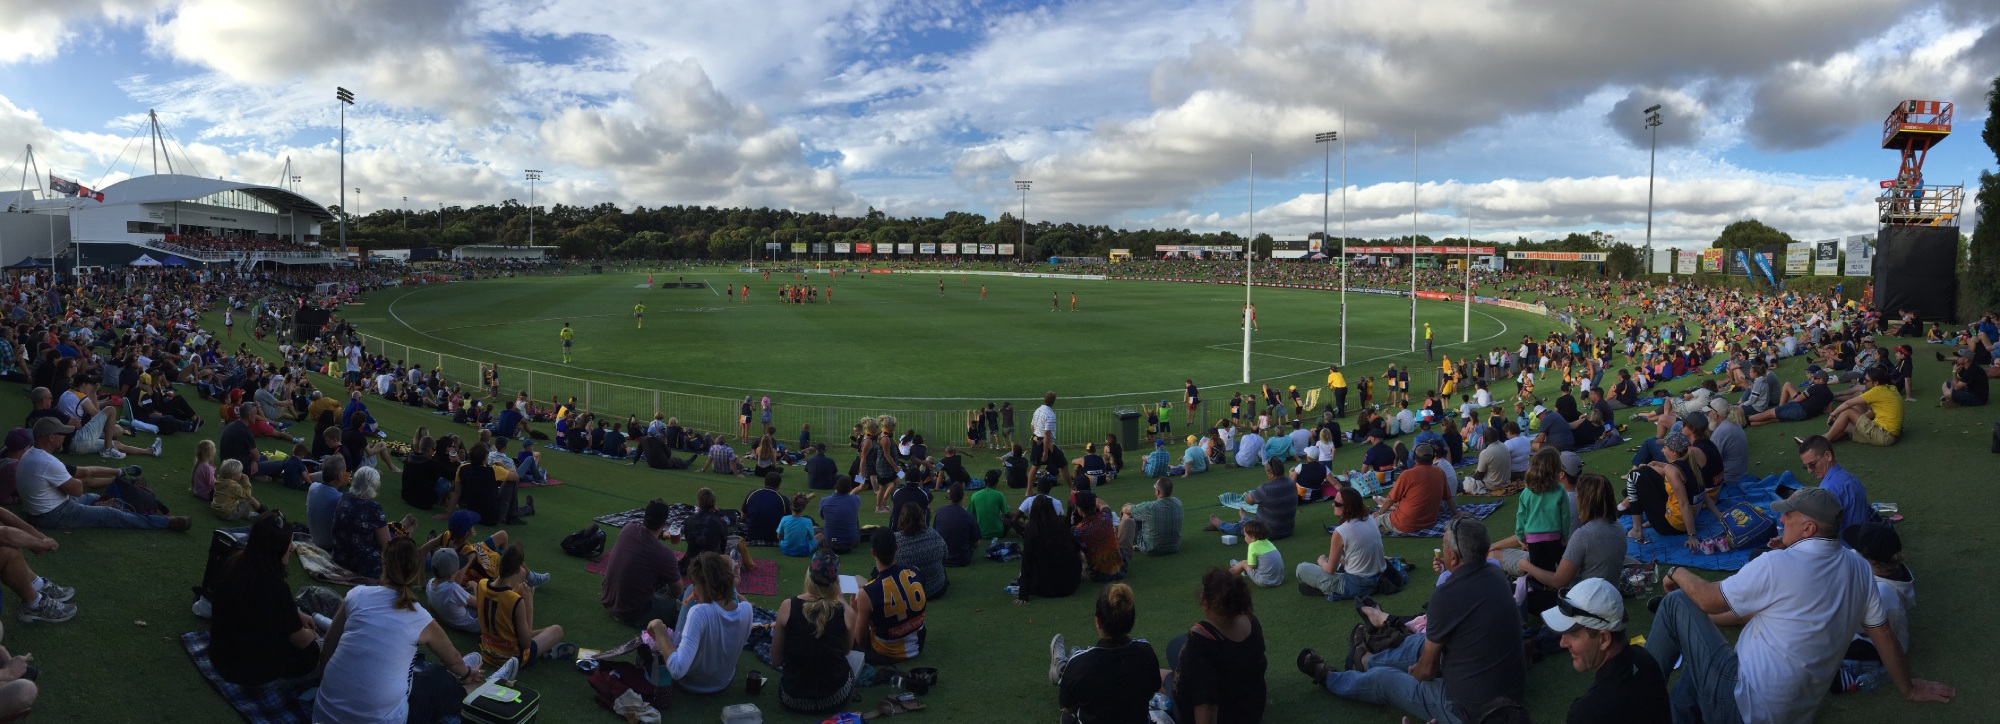 A subdued crowd of 5021 watched West Coast take on Gold Coast earlier this month. Picture: J Bianchini